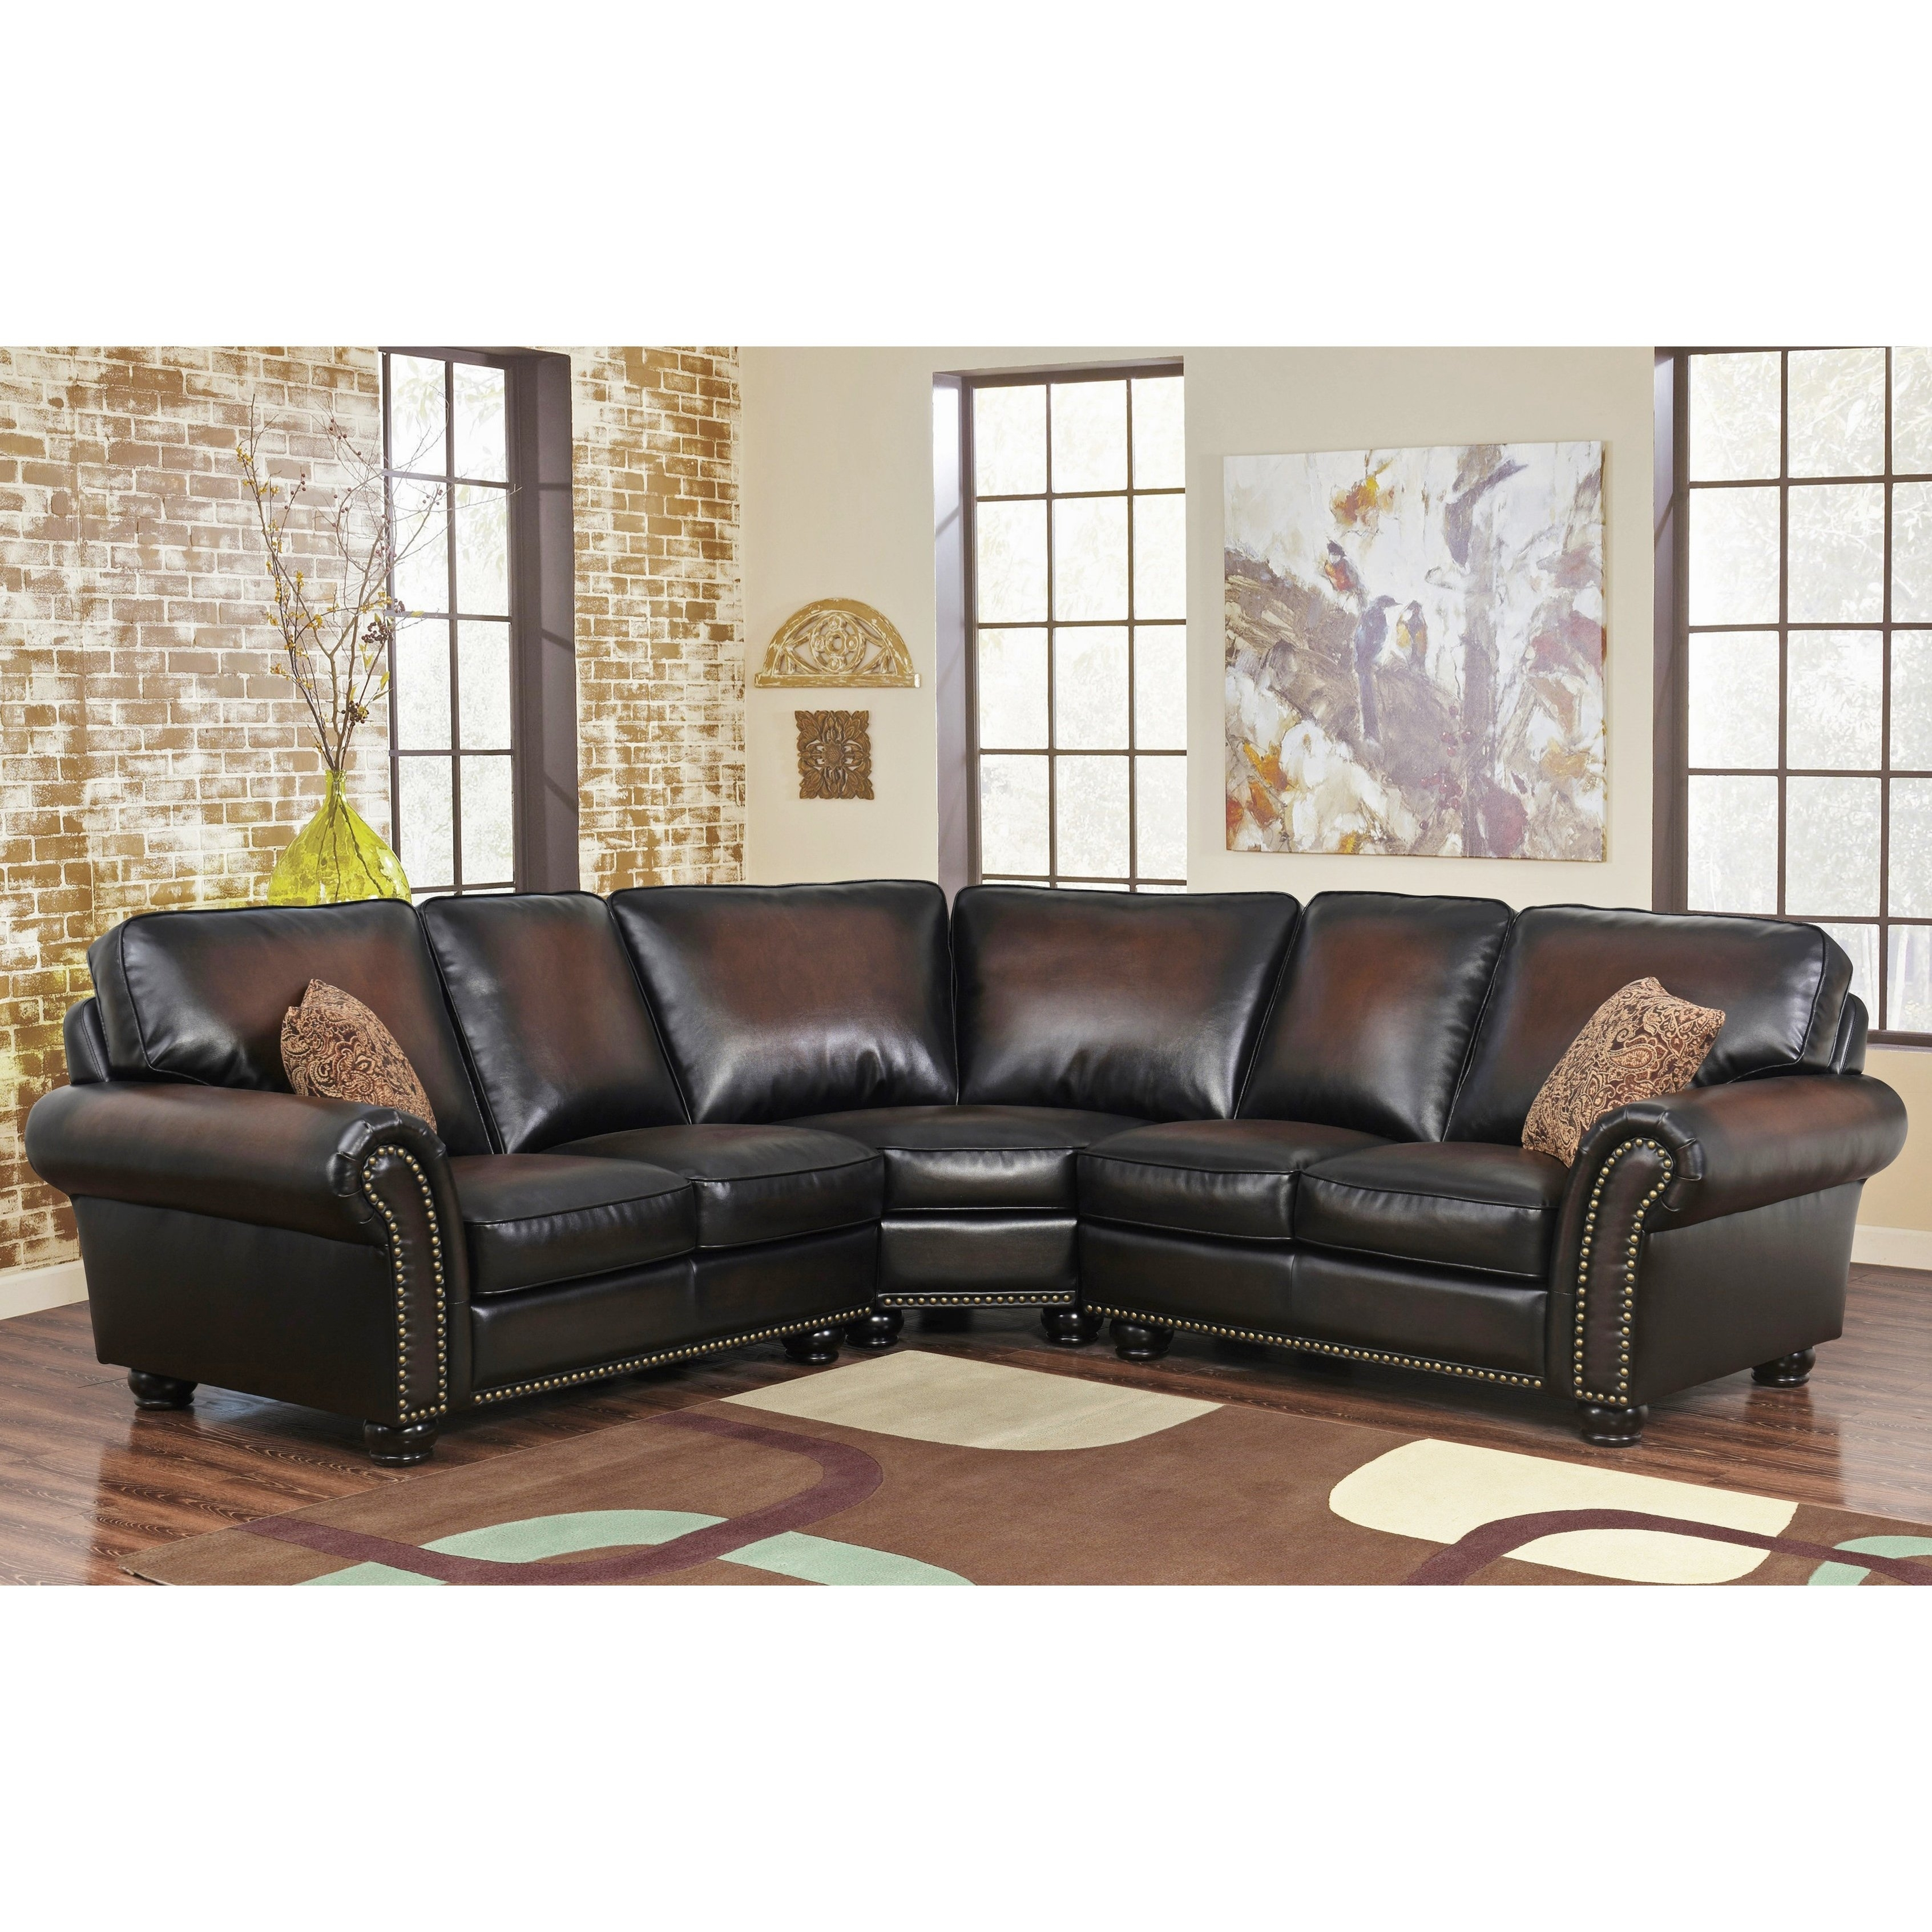 Shop Abbyson Melrose Bonded Leather 3 Piece Sectional – Free In Haven 3 Piece Sectionals (View 5 of 25)